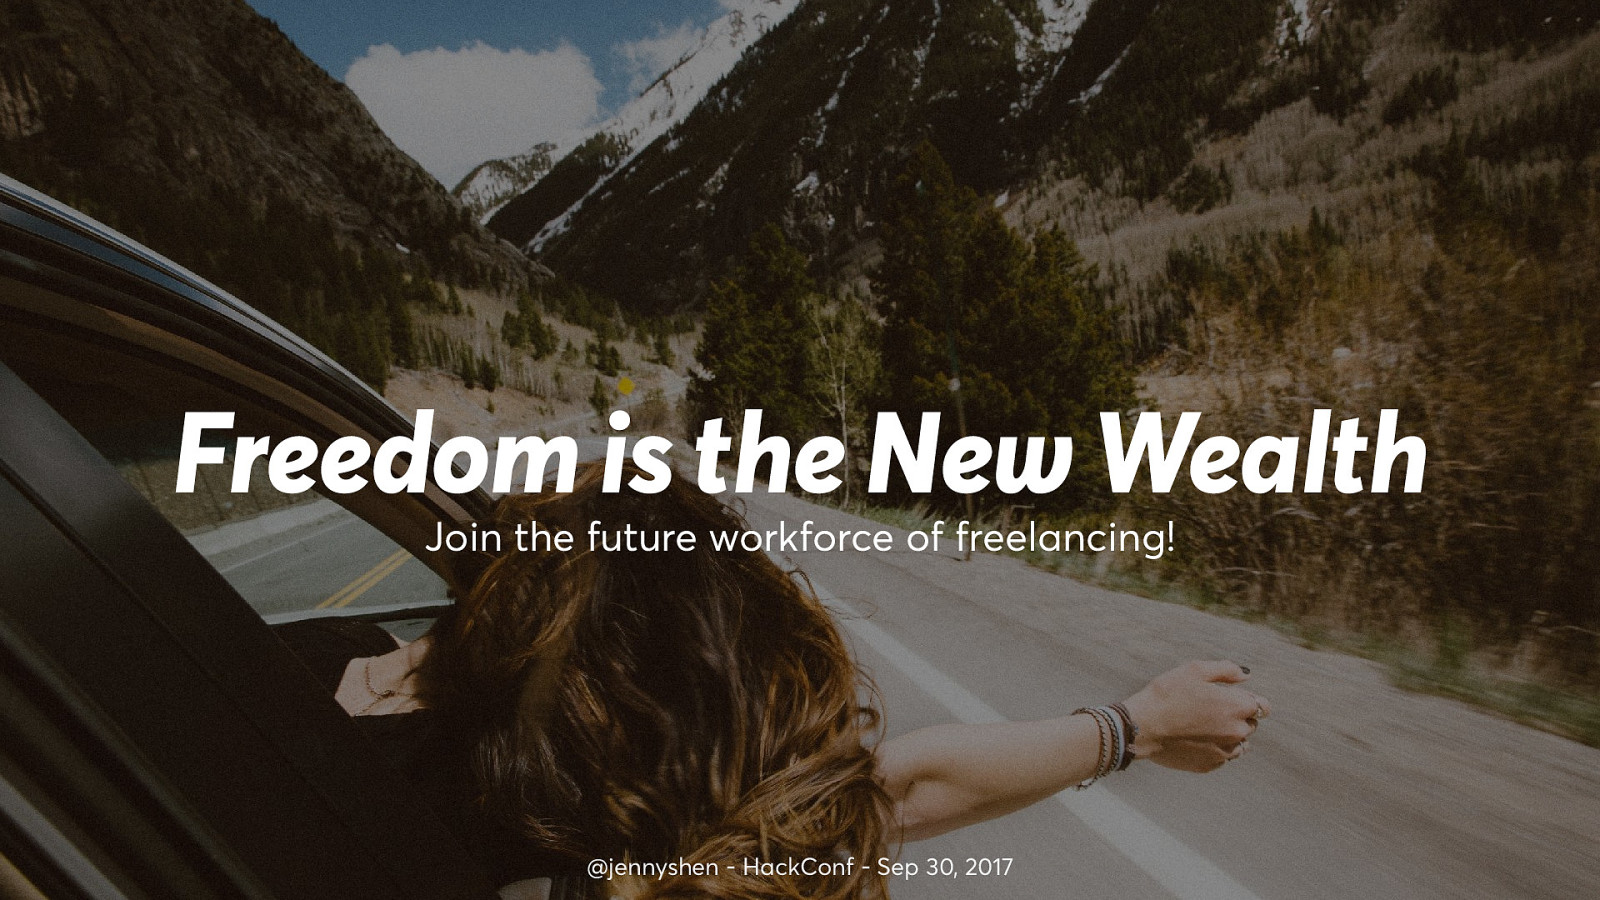 Freedom is the new wealth—Join the future workforce of freelancing